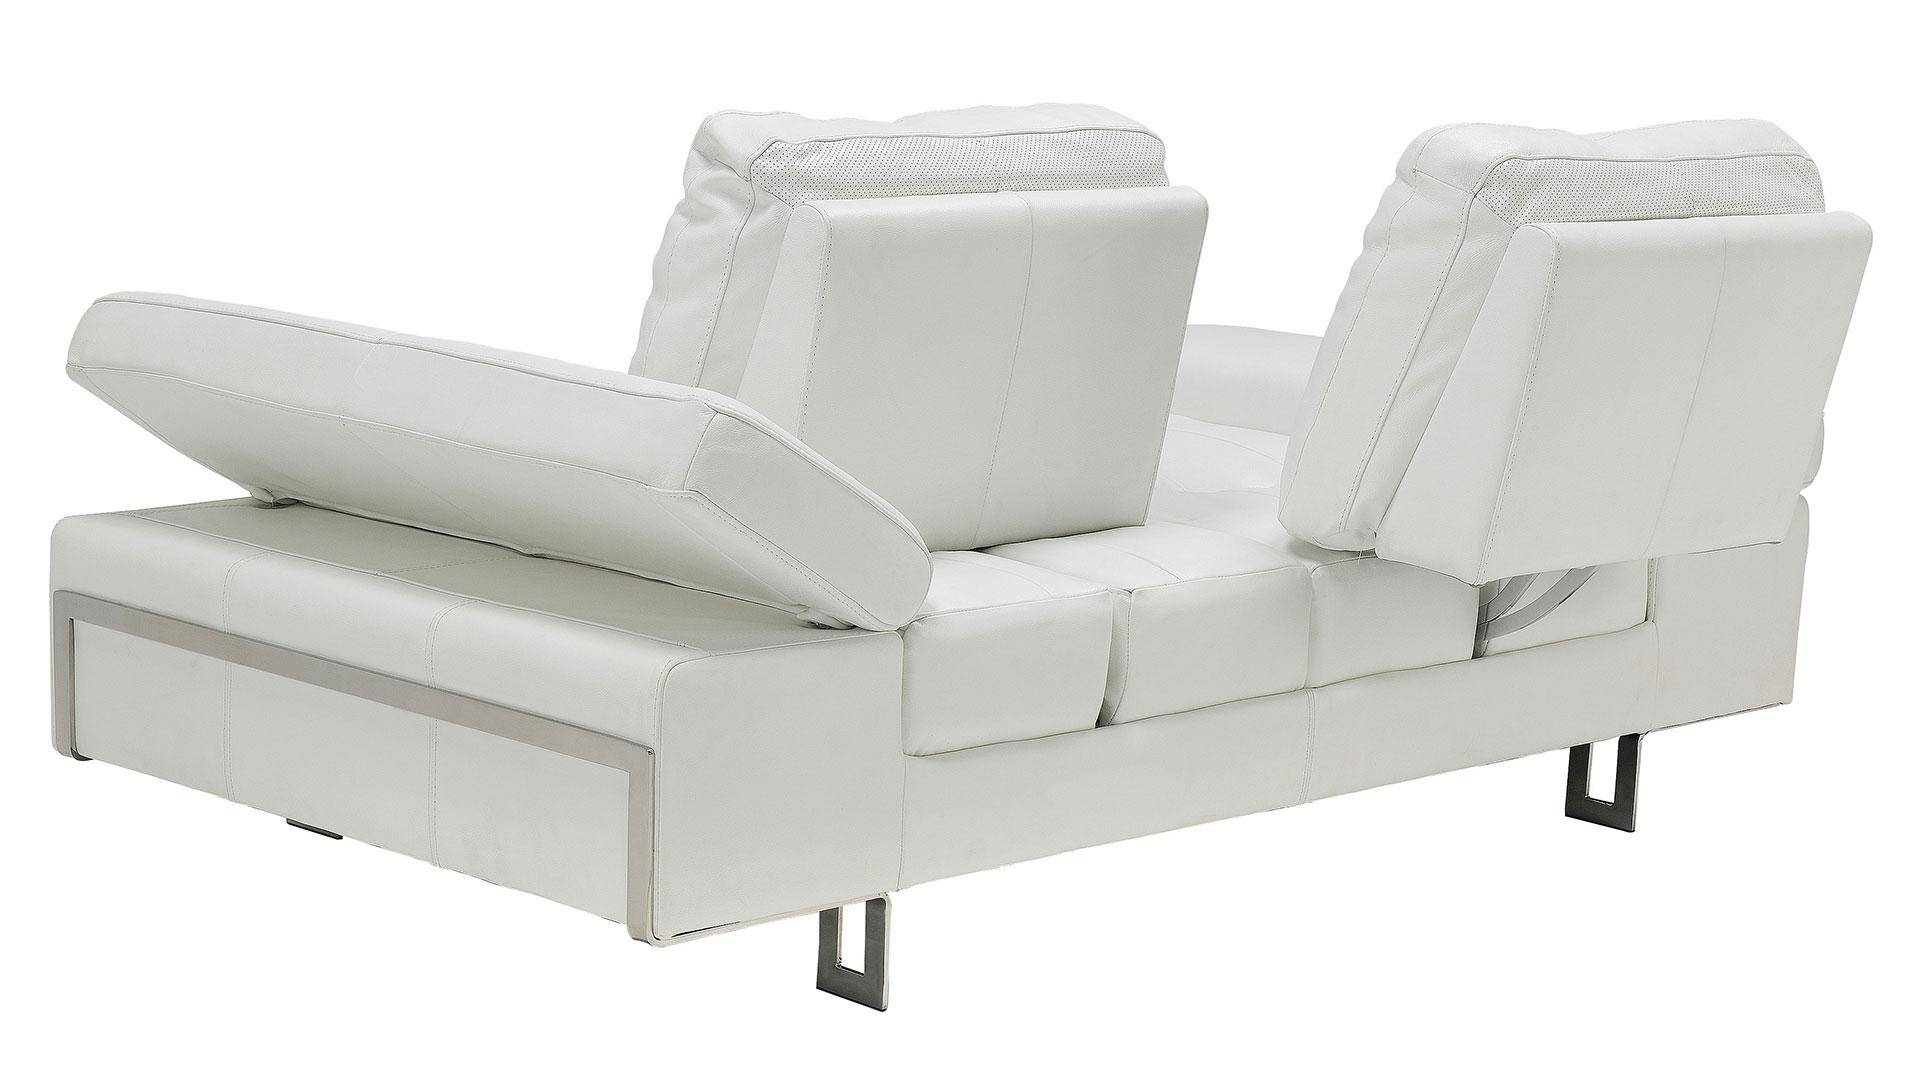 At Home Usa Gia White Luxury Italian Leather Ultra Modern Loveseat Contemporary Skuhite602